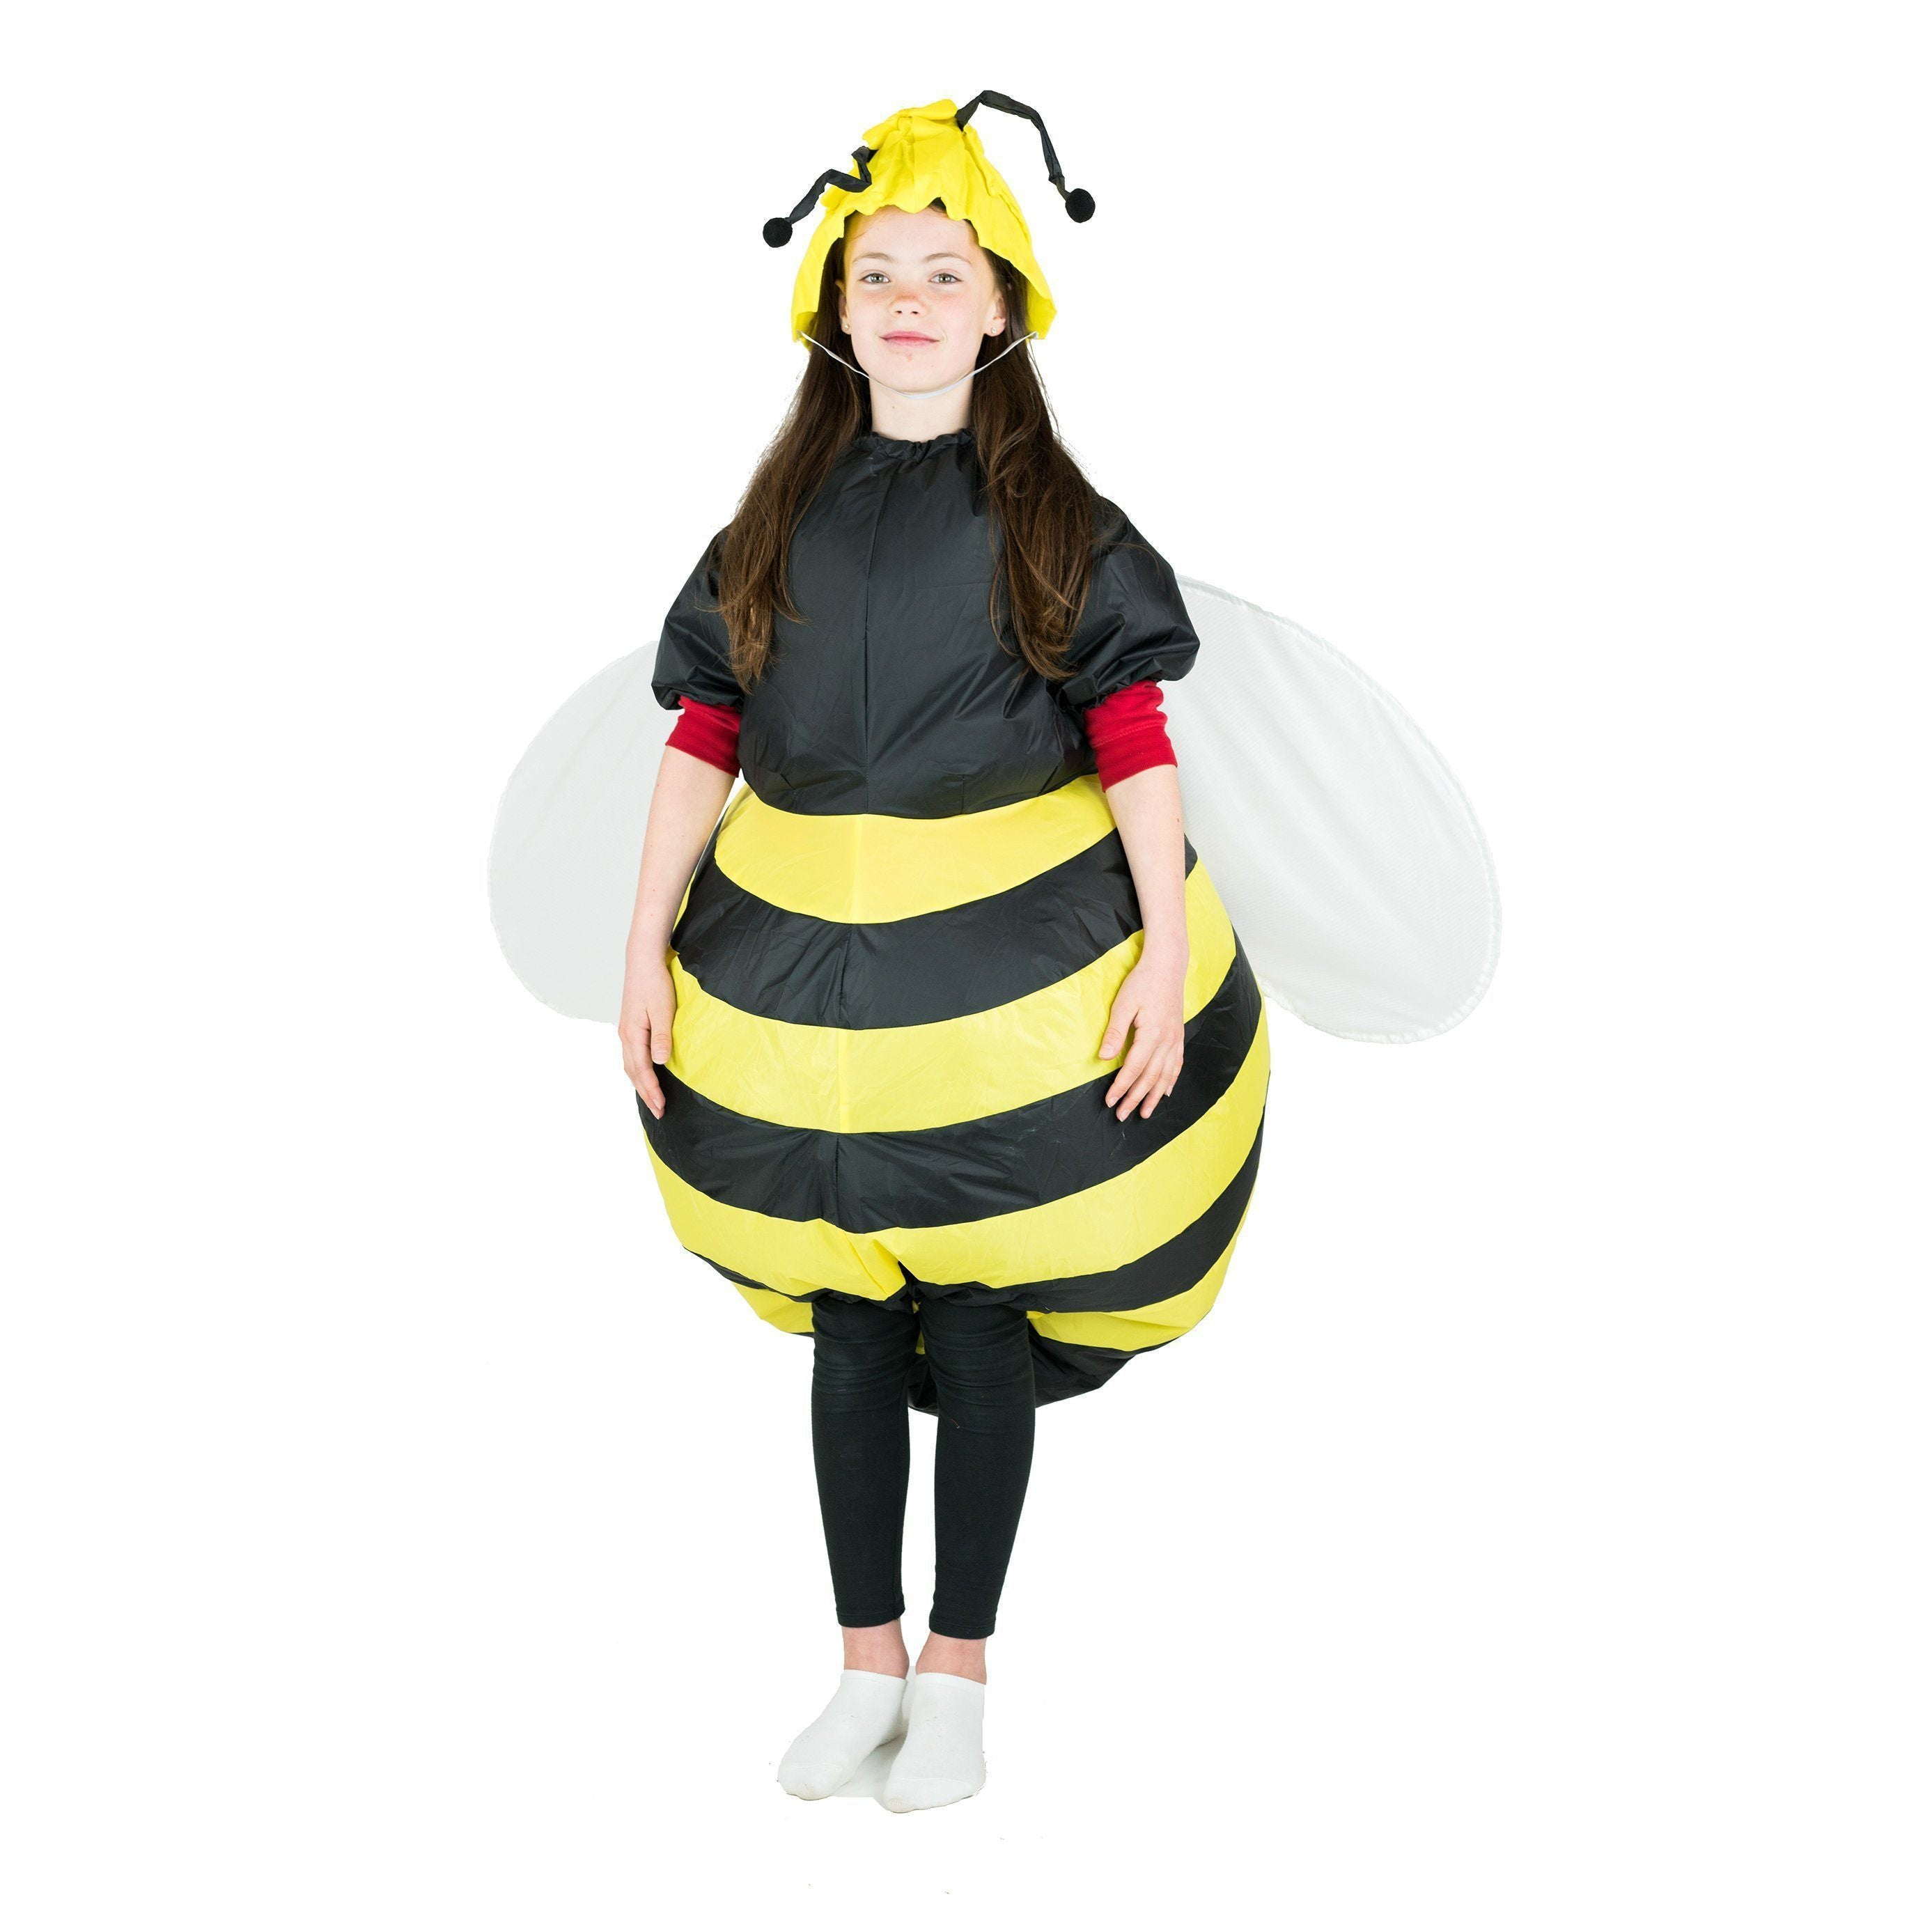 Fancy Dress - Kids Inflatable Bee Costume